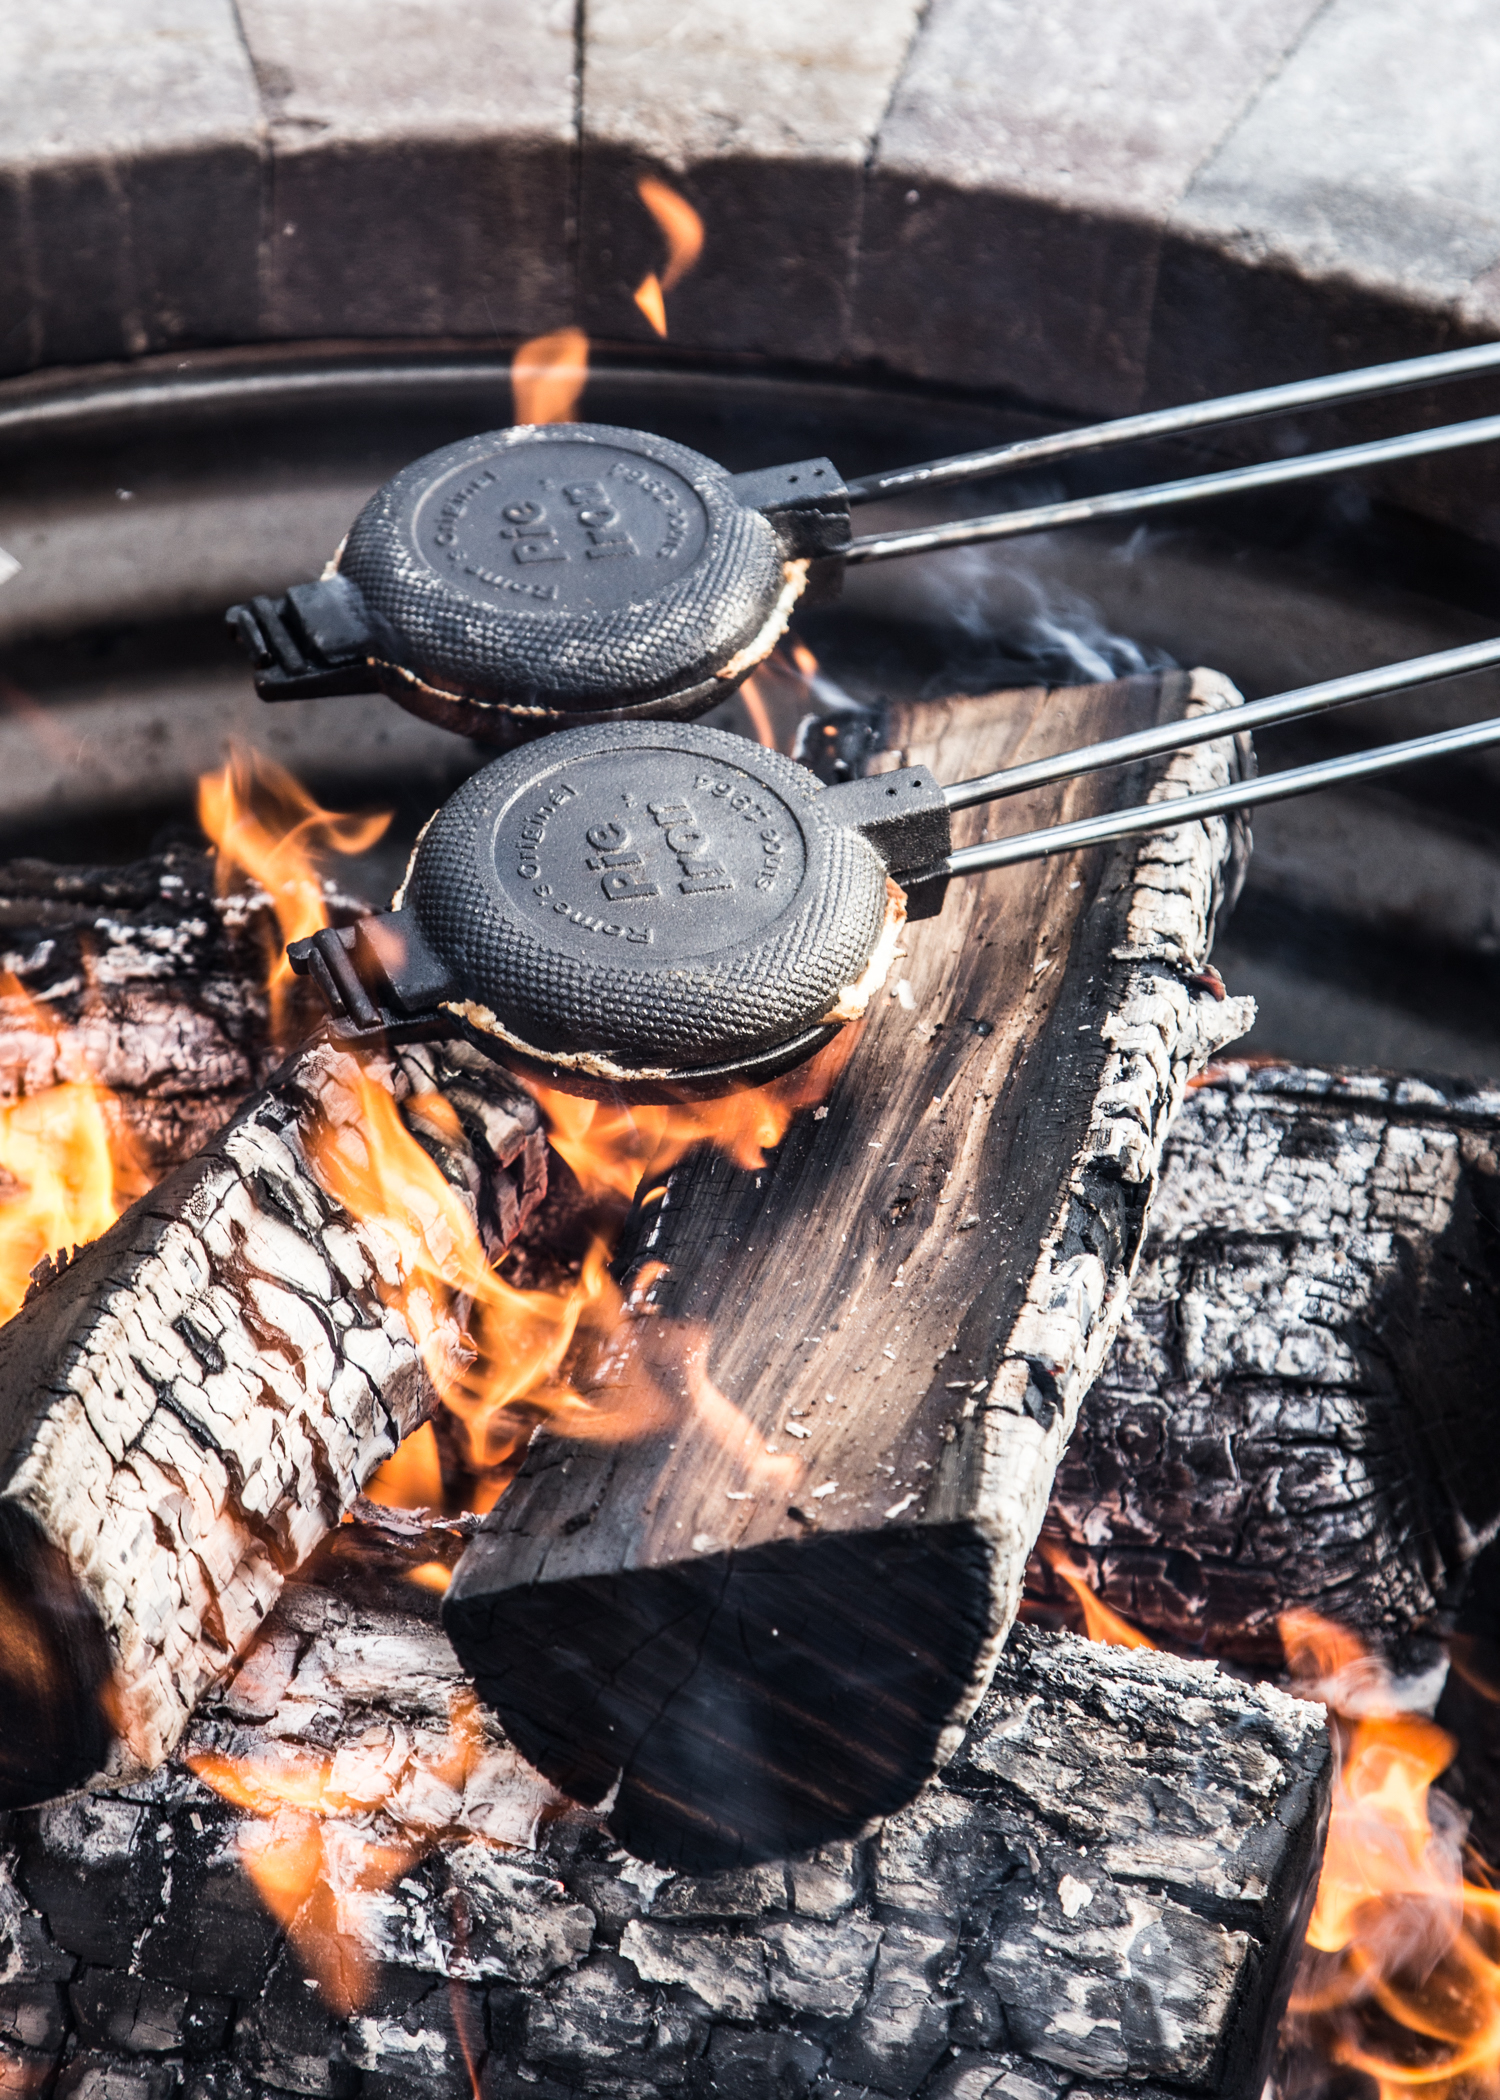 Roasting S'mores Pudgy Pies over campfire